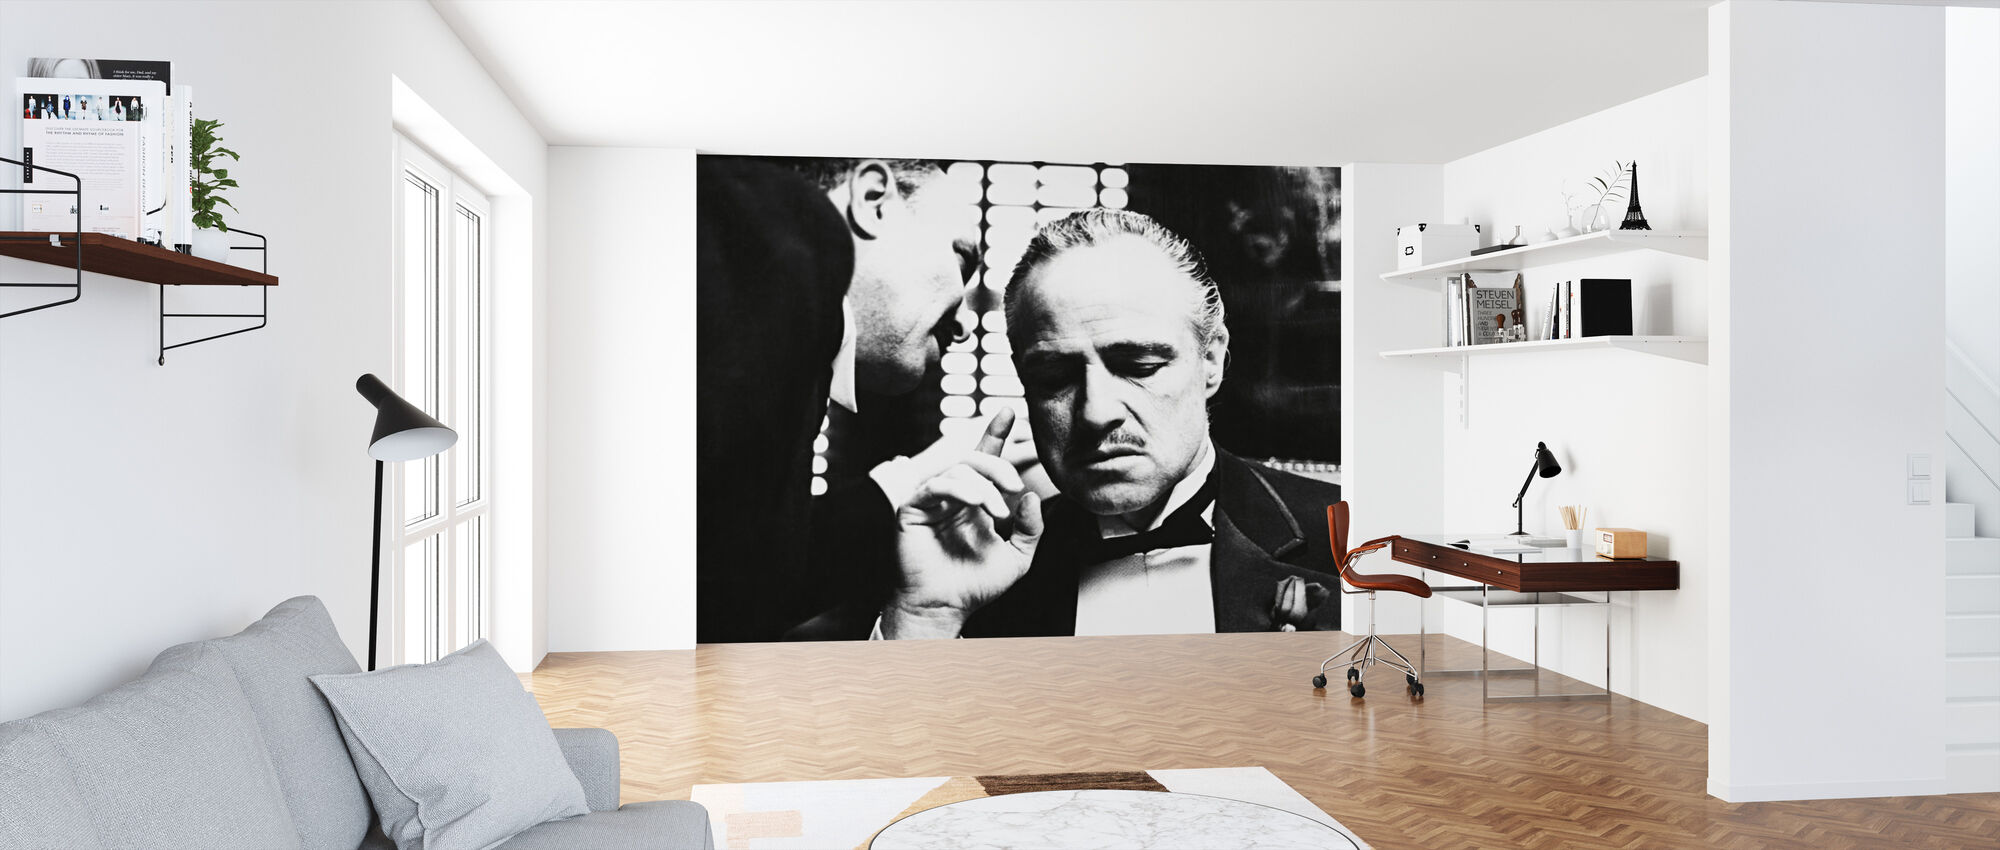 Marlon Brando in the Godfather - Wallpaper - Office